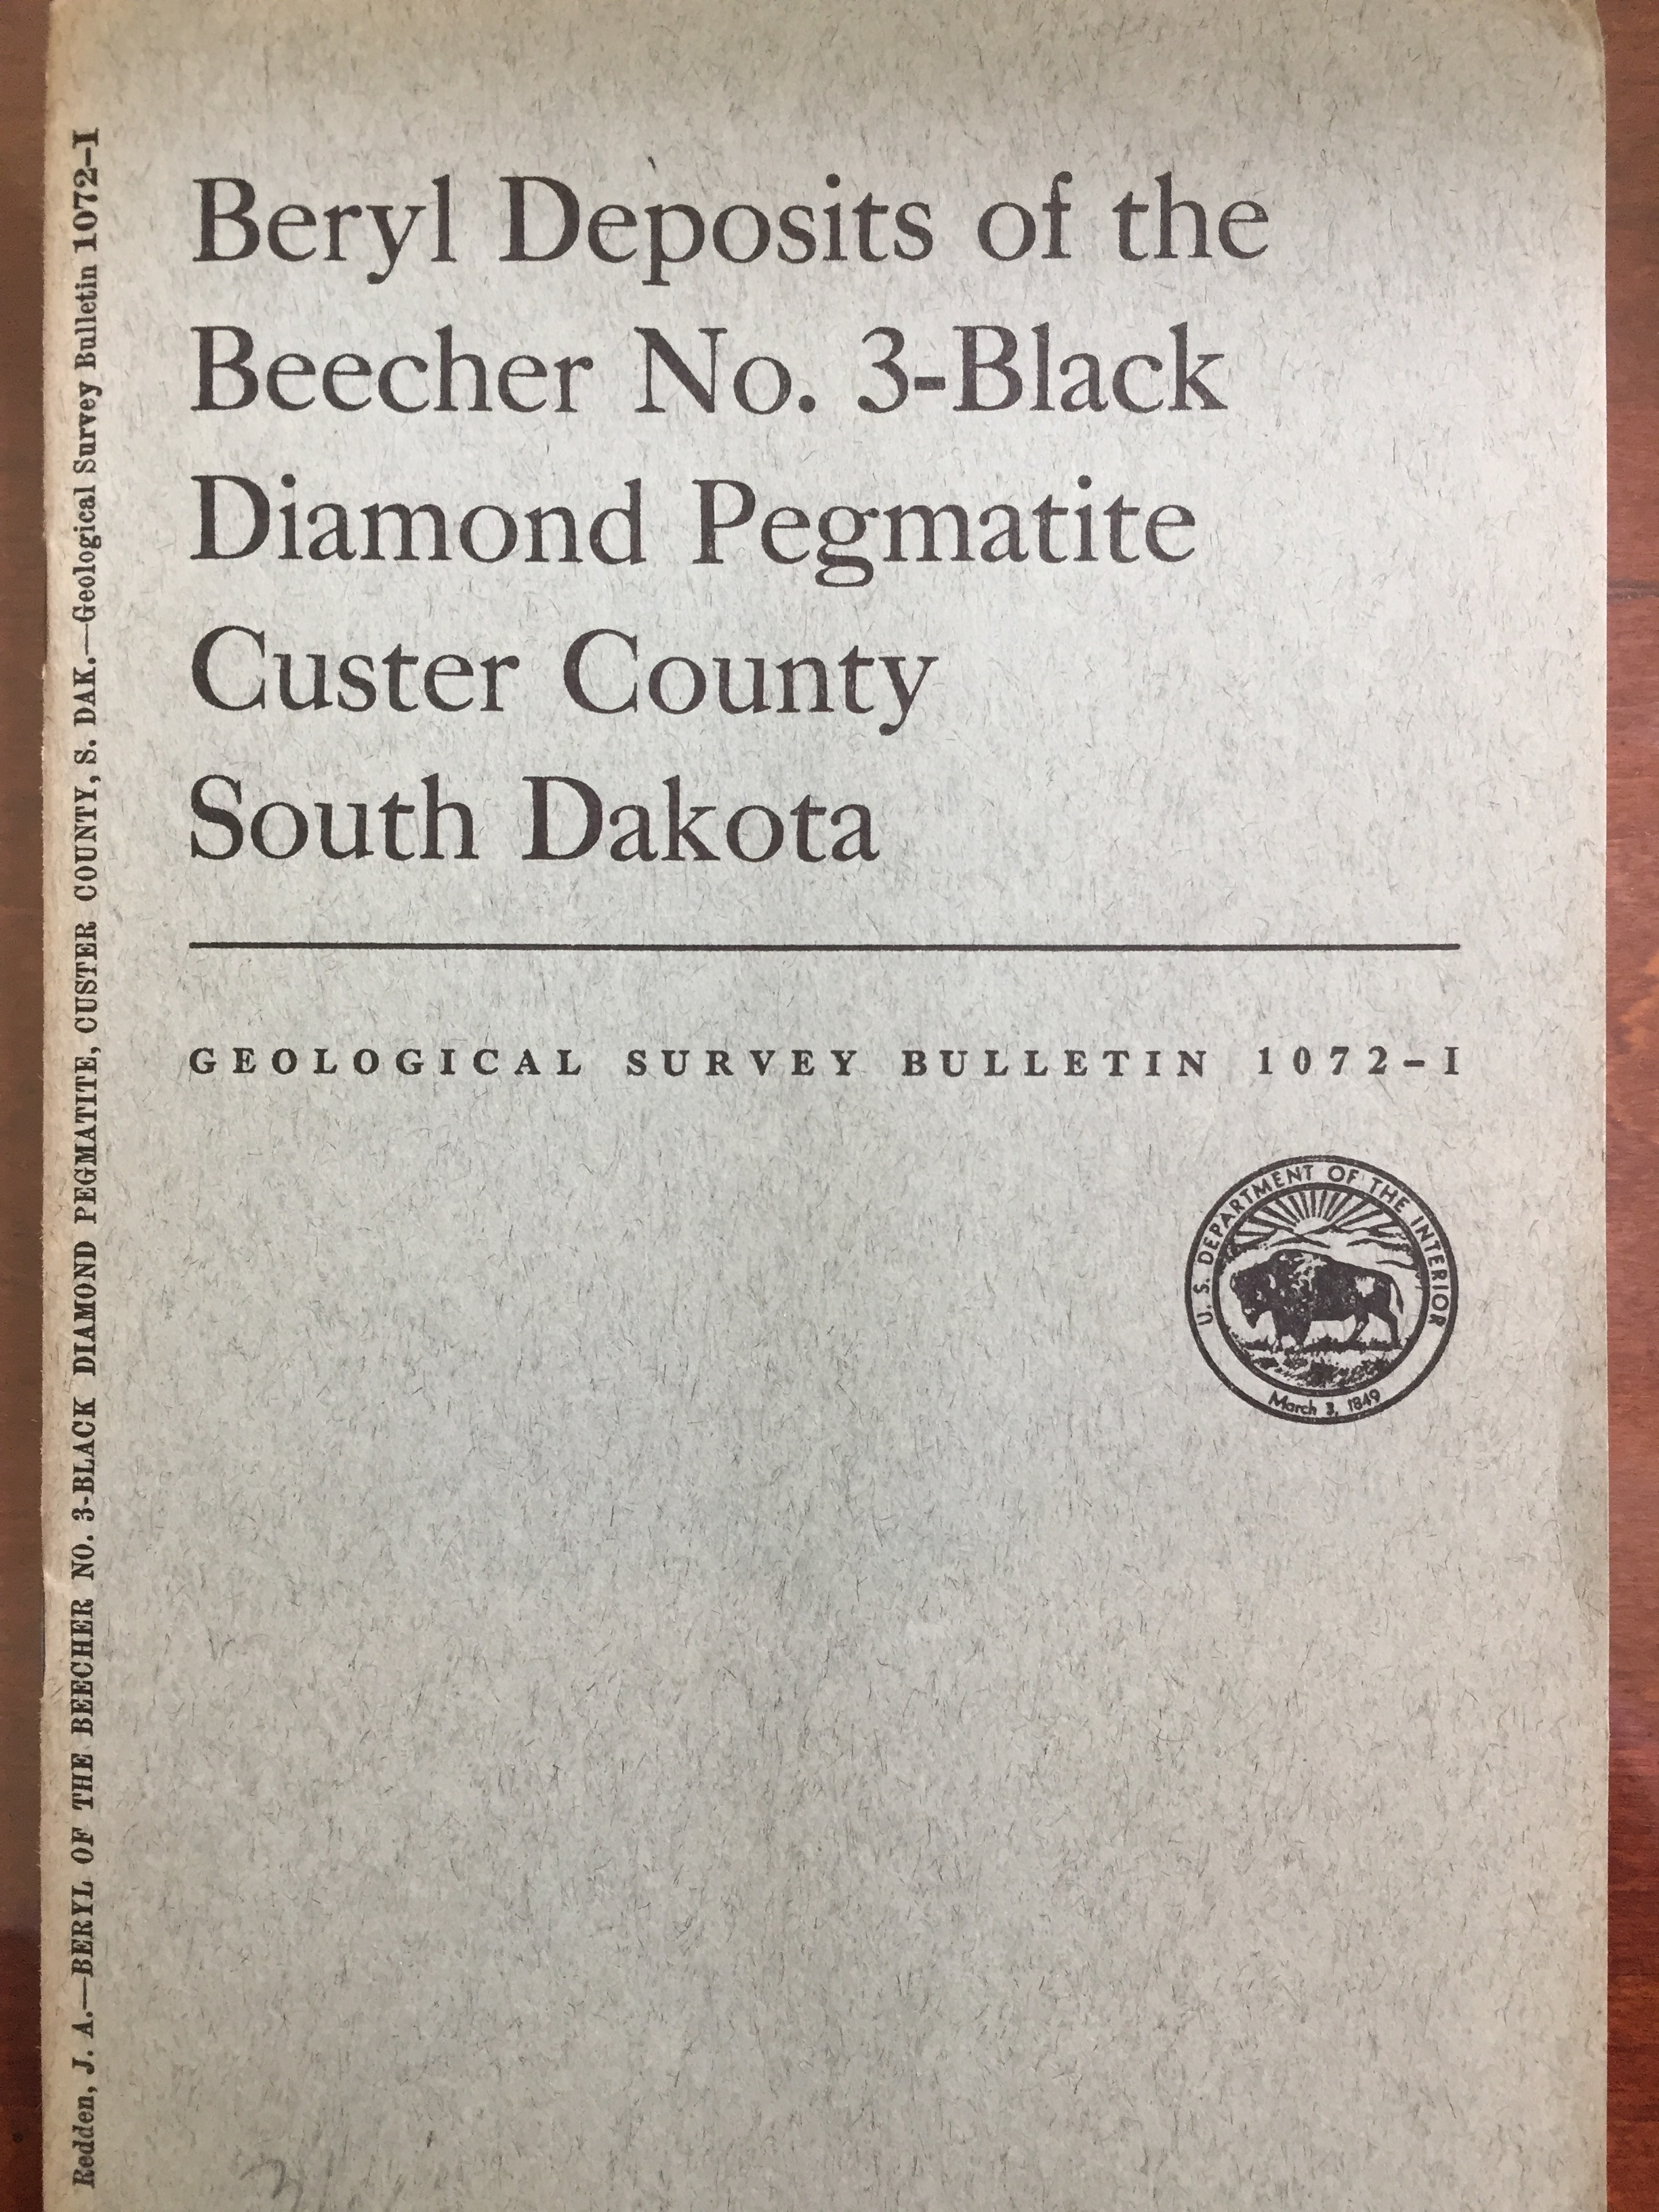 Image for Beryl Deposits of the Beecher No. 3-Black Diamond Pegmatite, Custer County, South Dakota